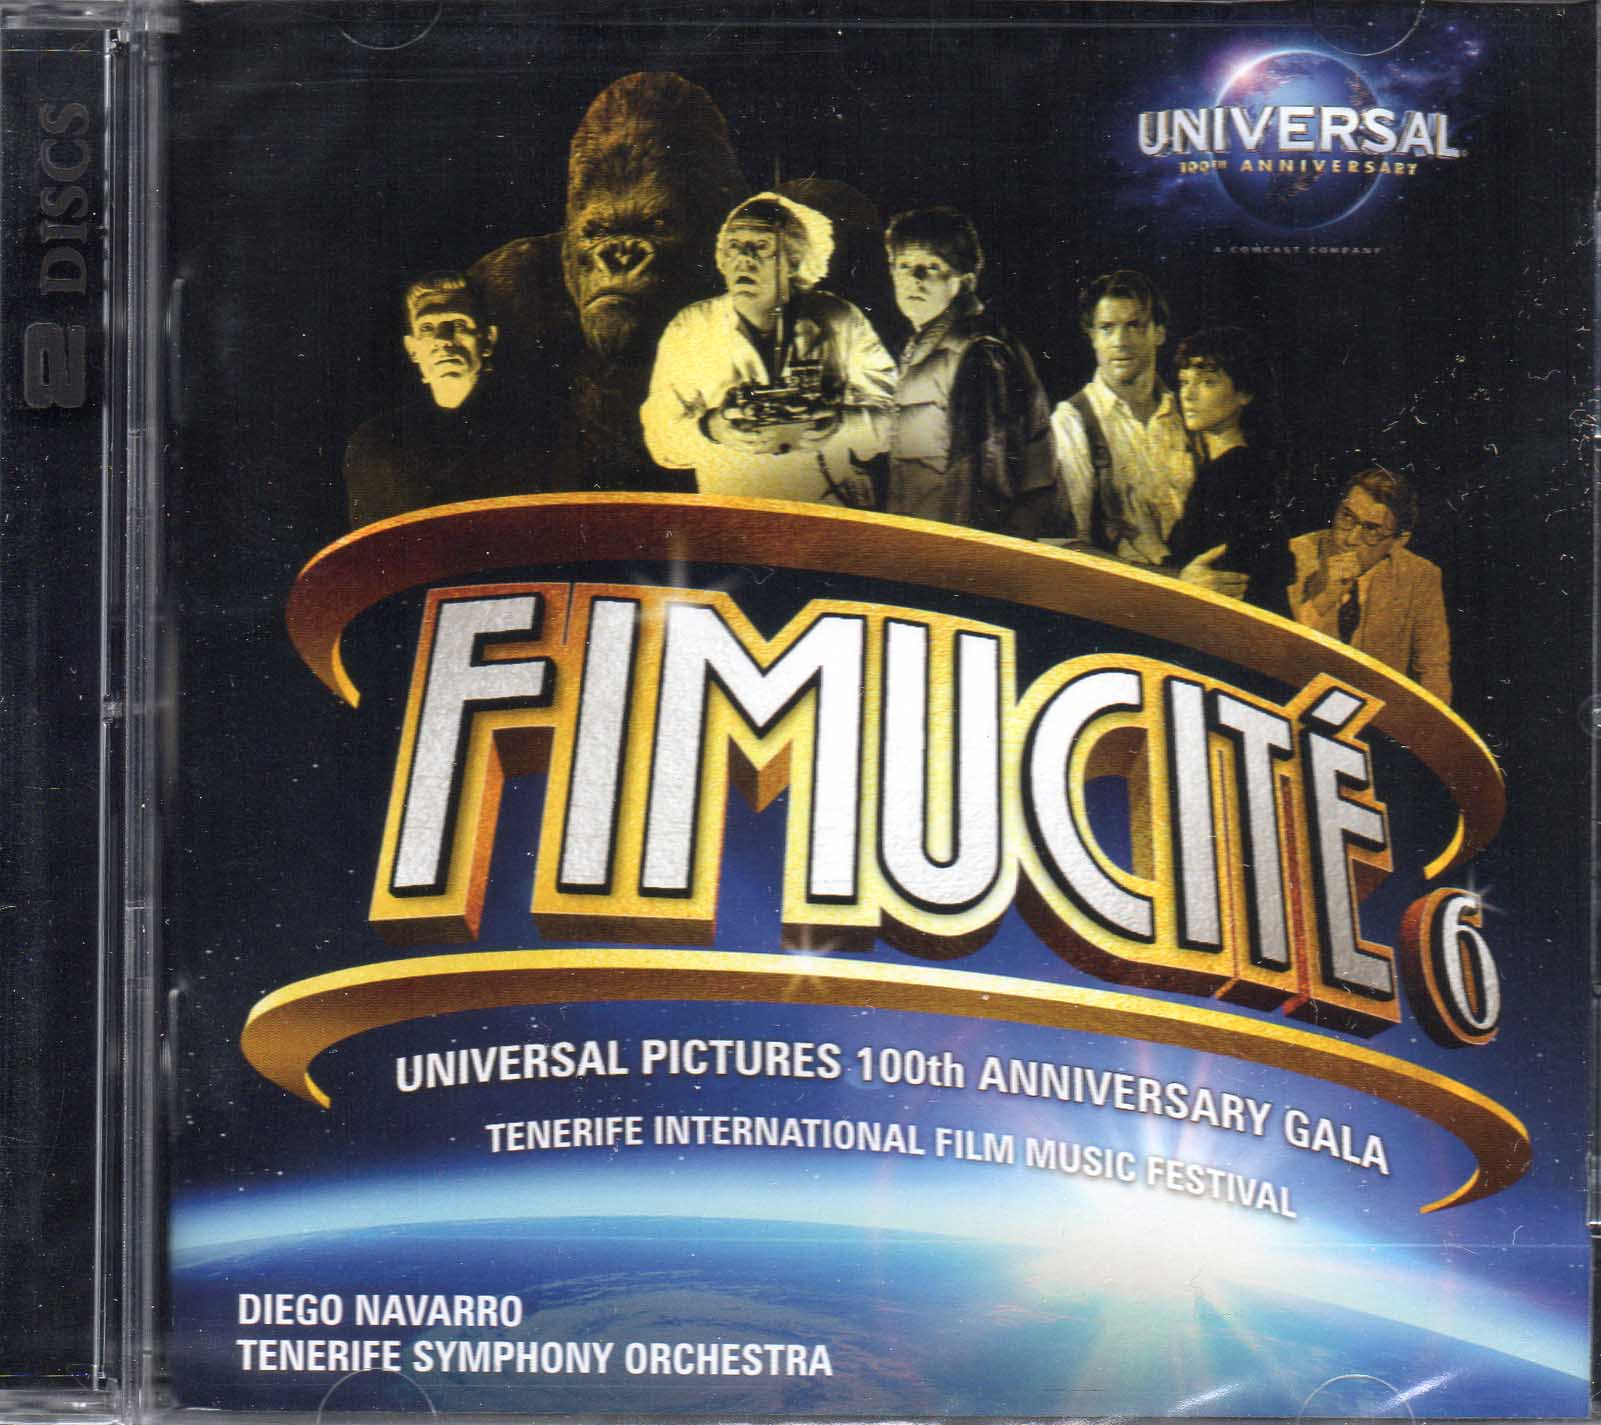 FIMUCITE 6 UNIVERSAL PICTURES 100TH ANNIVERSARY GALA